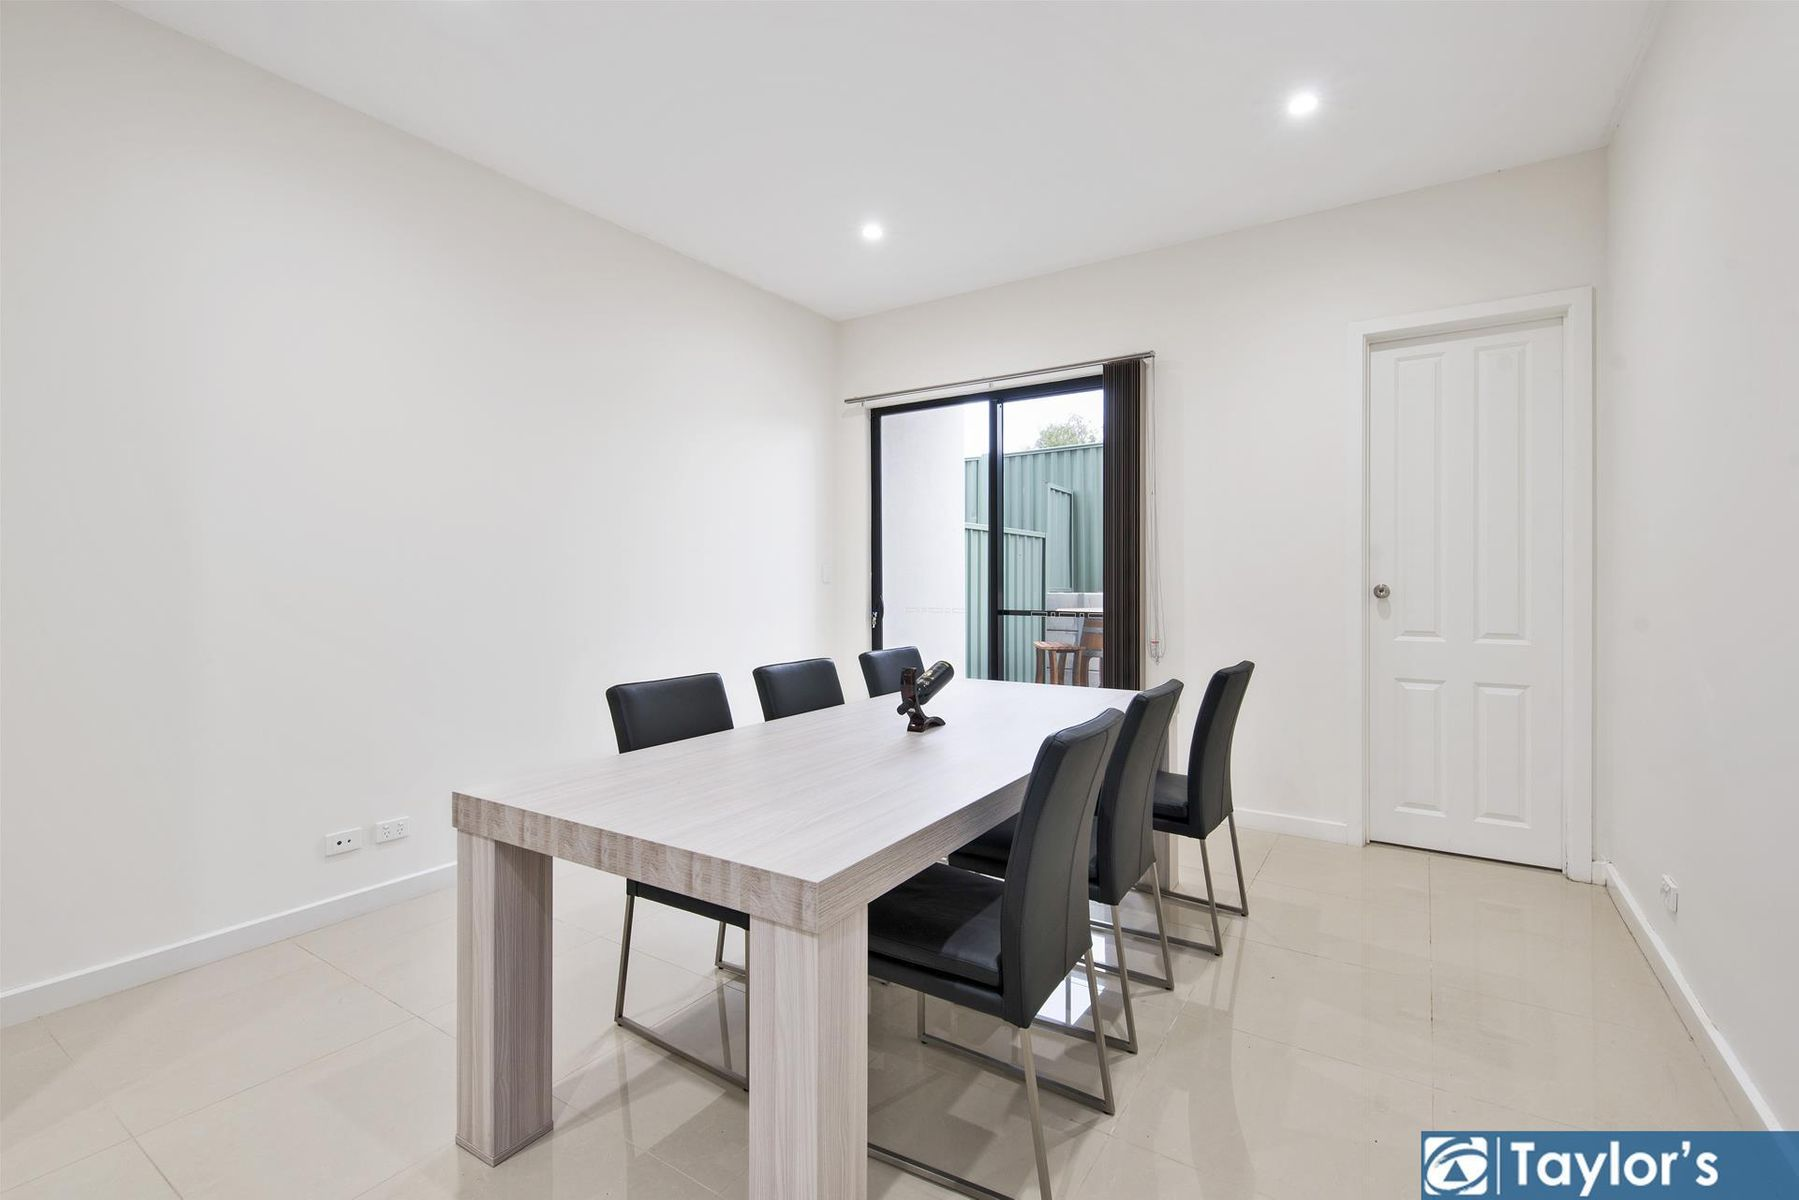 27A Coventry Street, Mawson Lakes, SA 5095